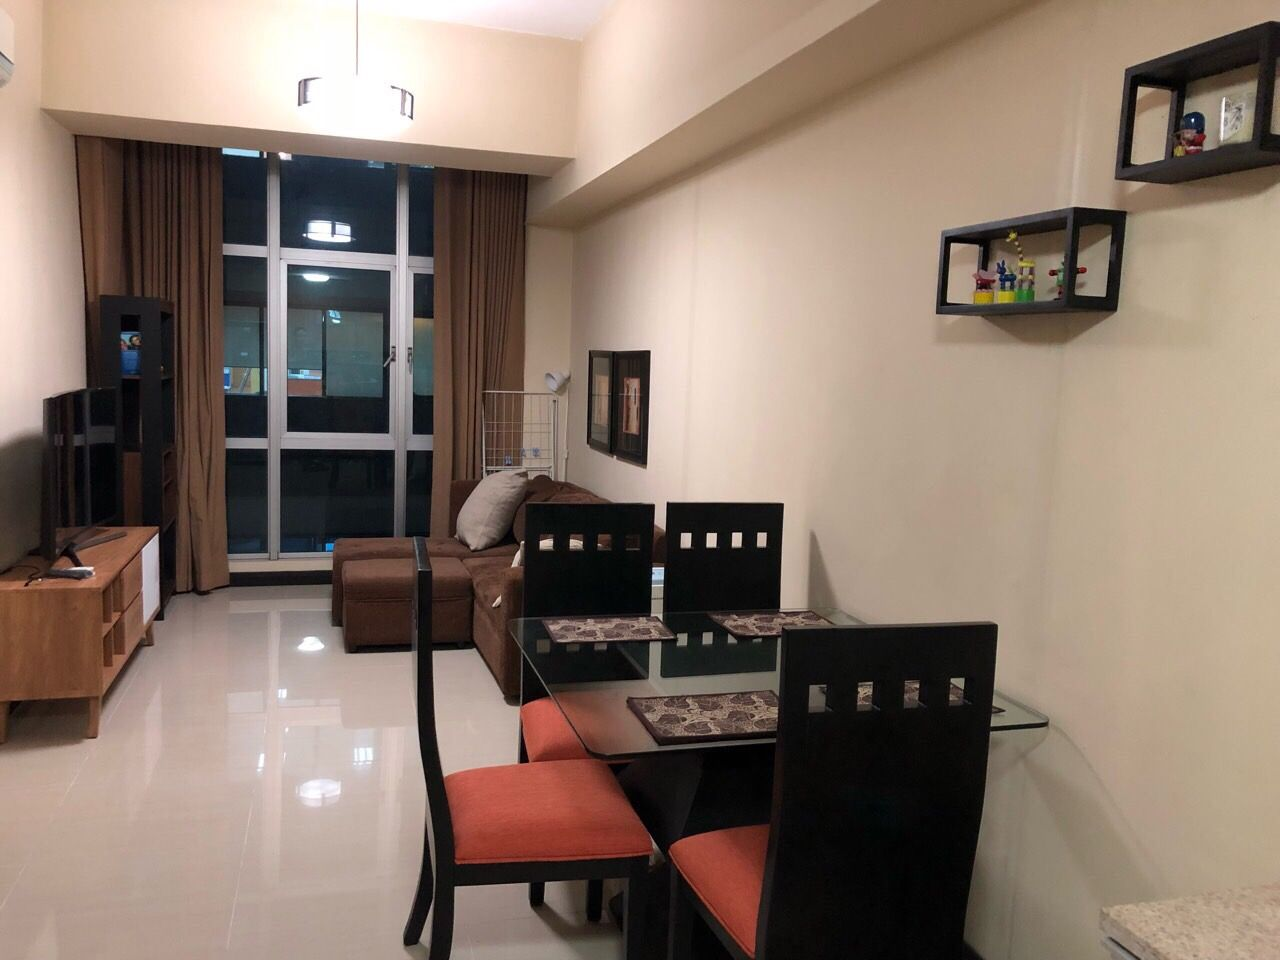 Apartment For Rent In Taguig Area 2 Bedroom | Home Design ...